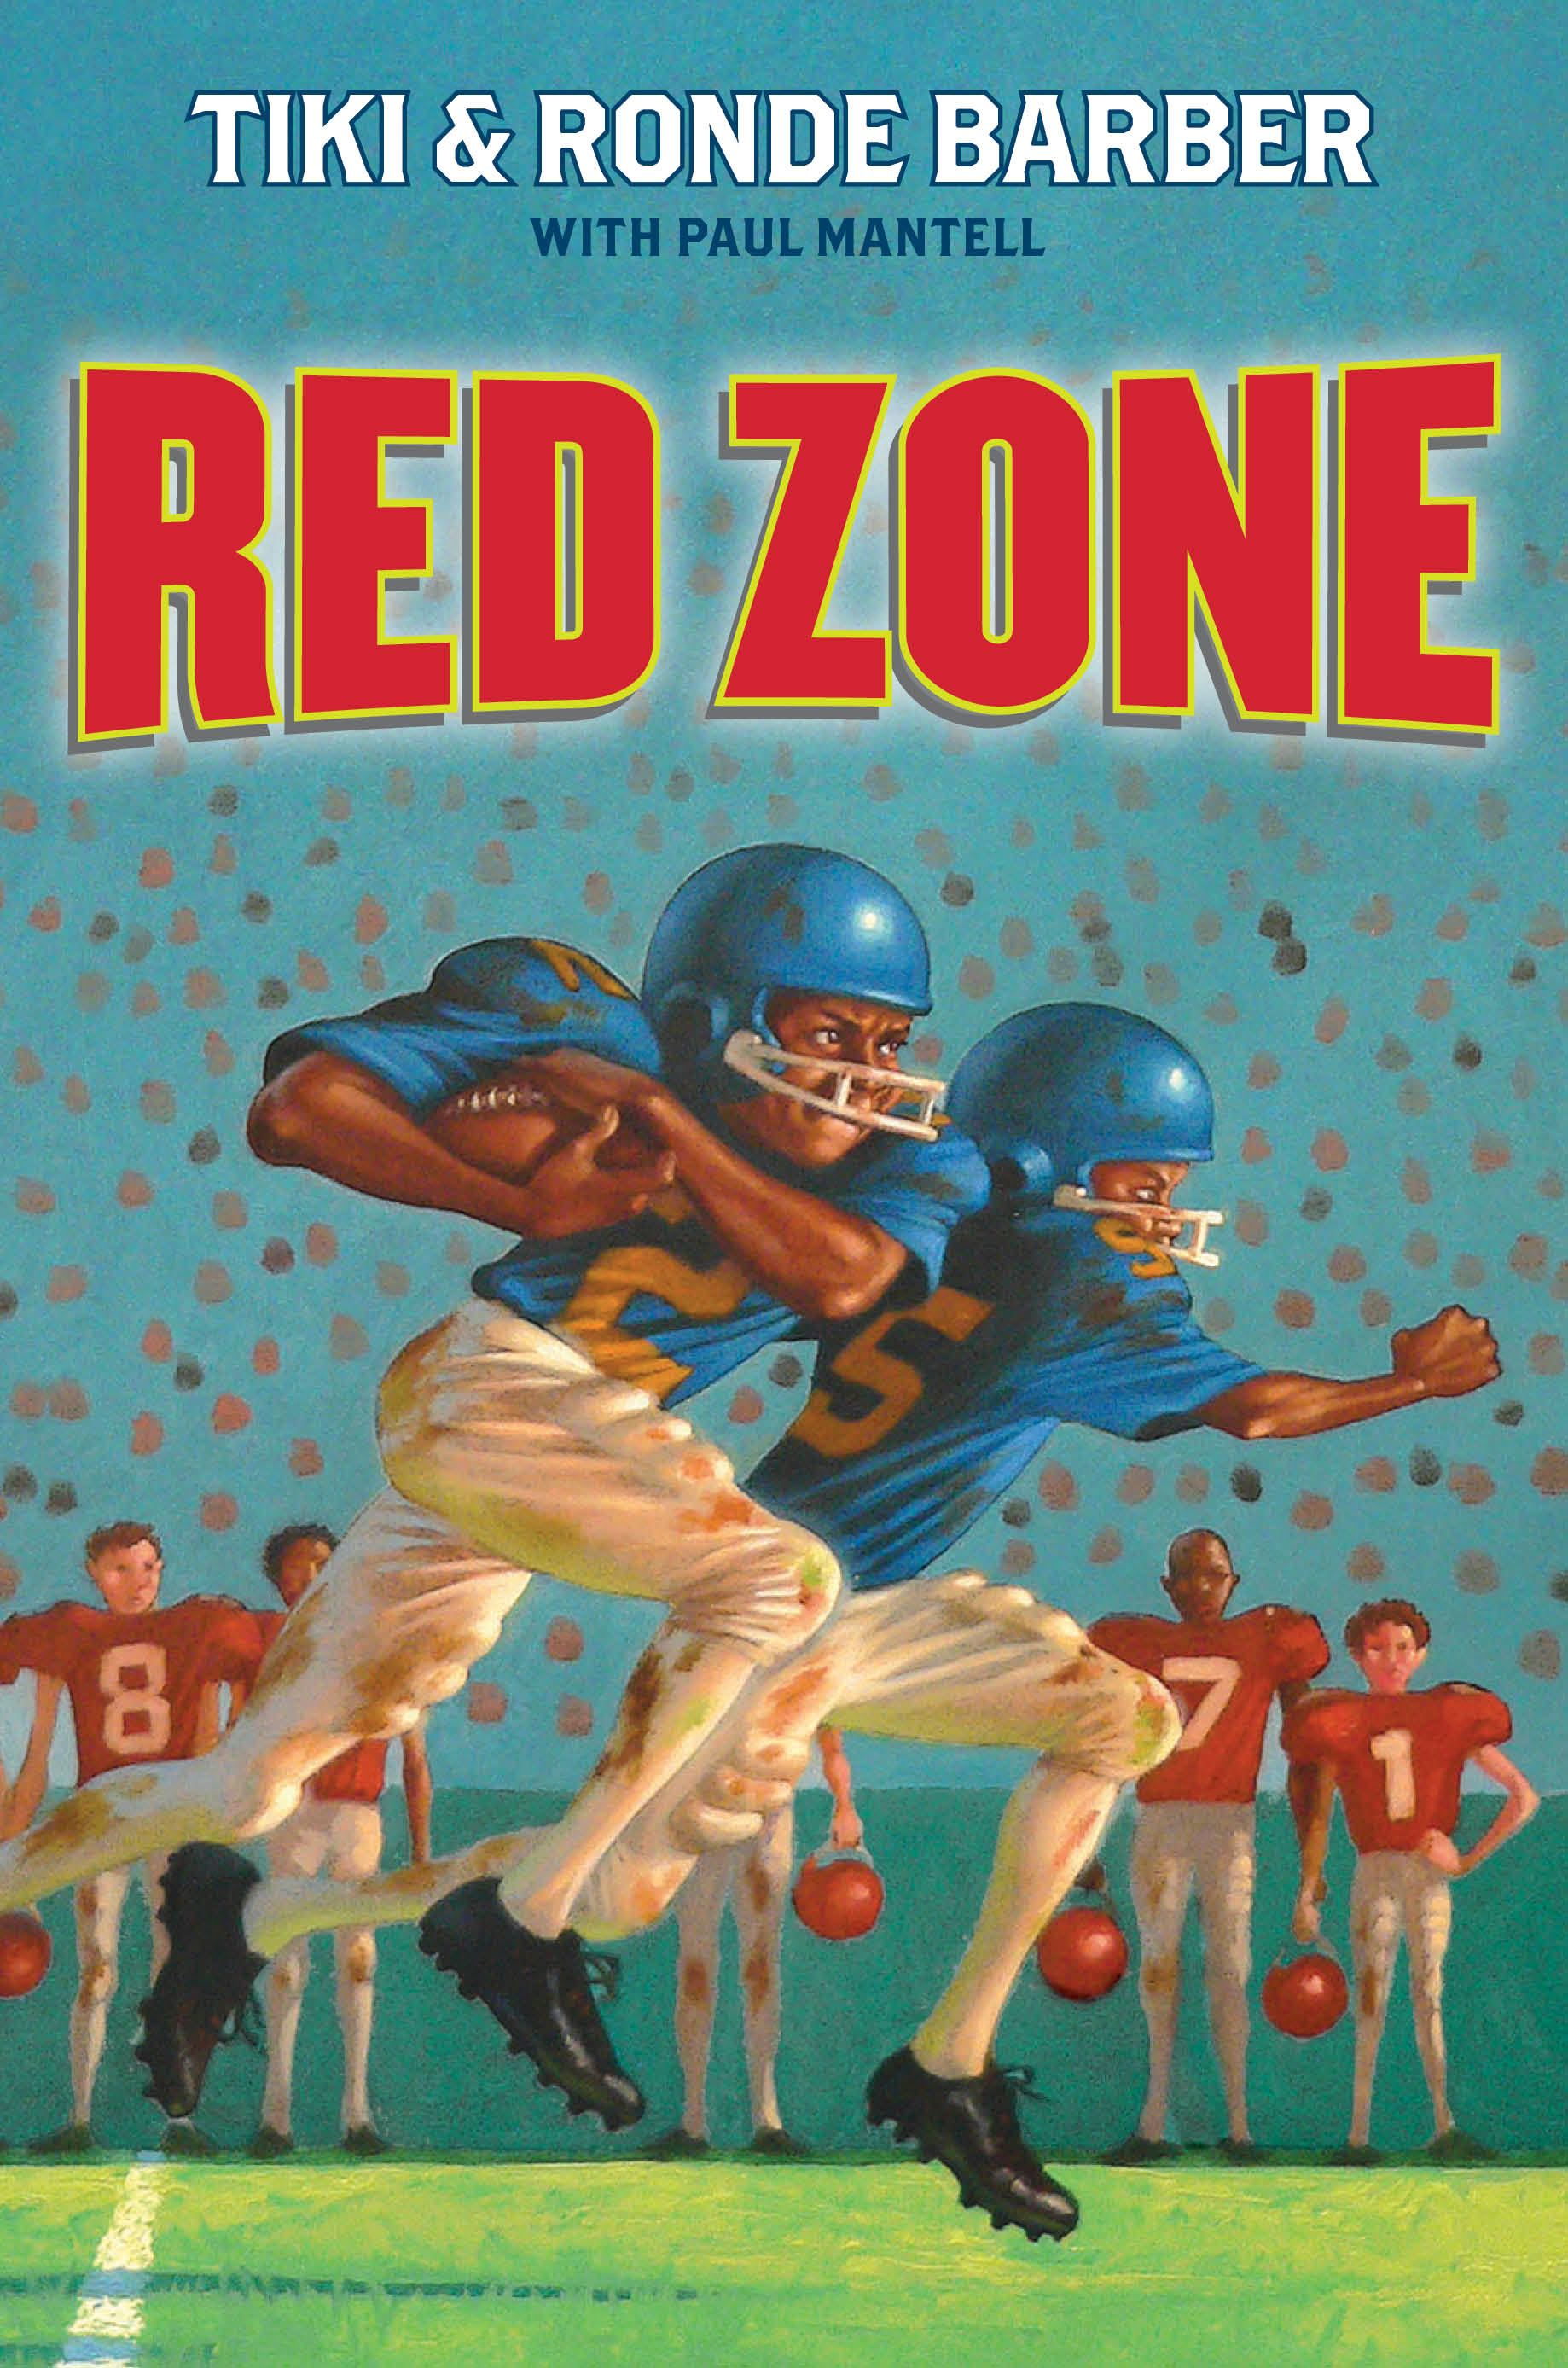 Cook Book Cover Zone ~ Red zone book by tiki barber ronde paul mantell